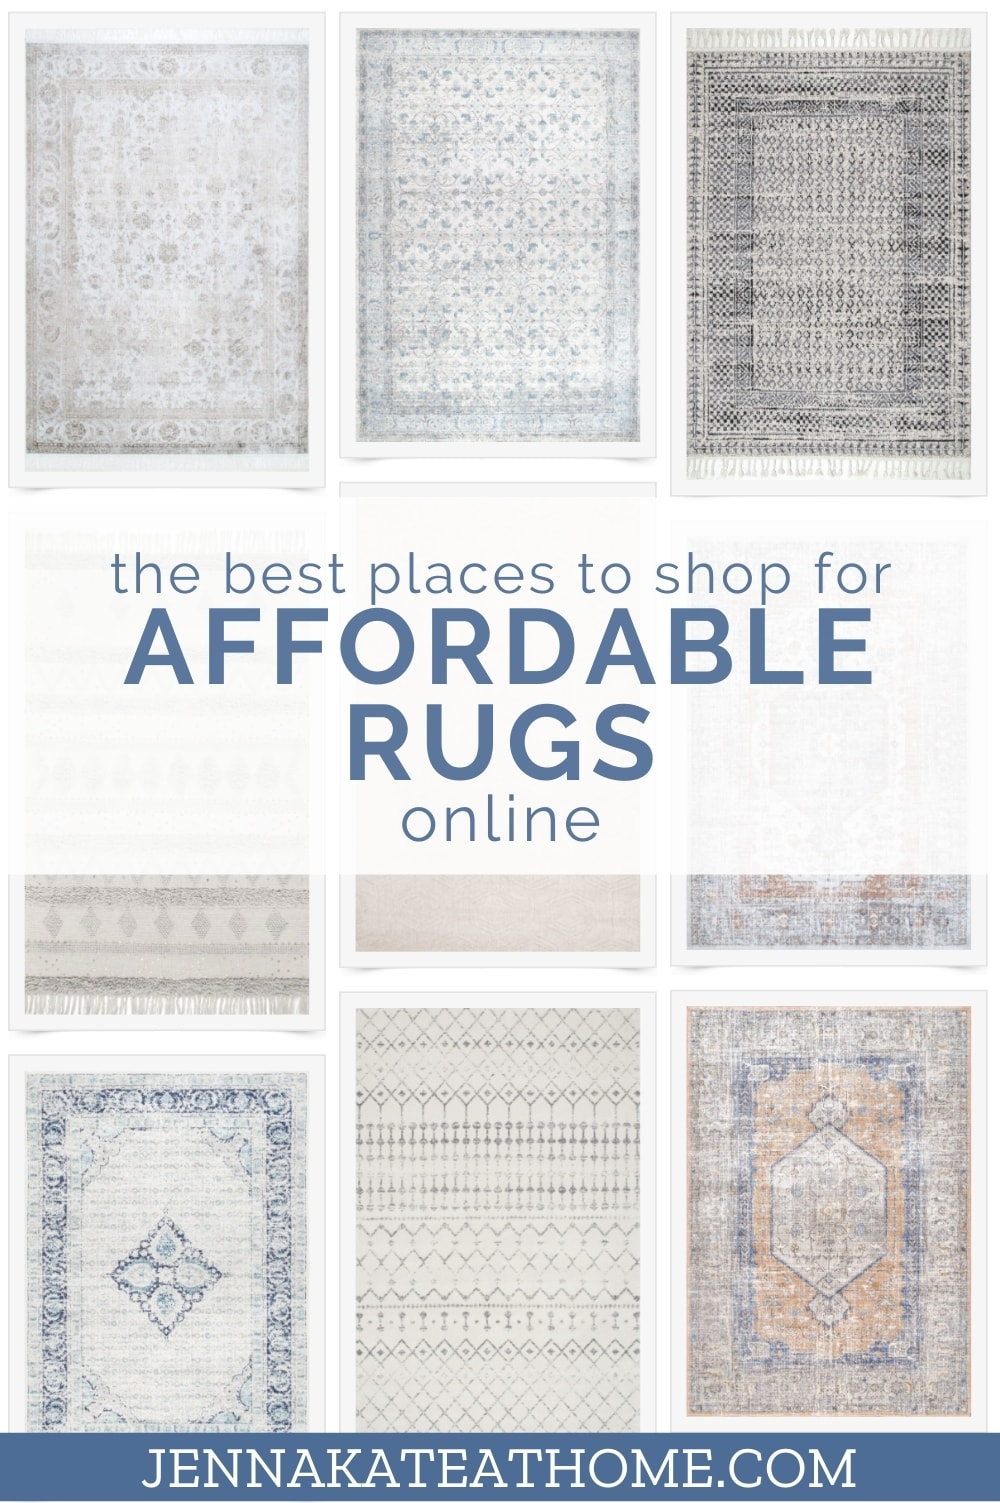 the best places to shop for affordable rugs online